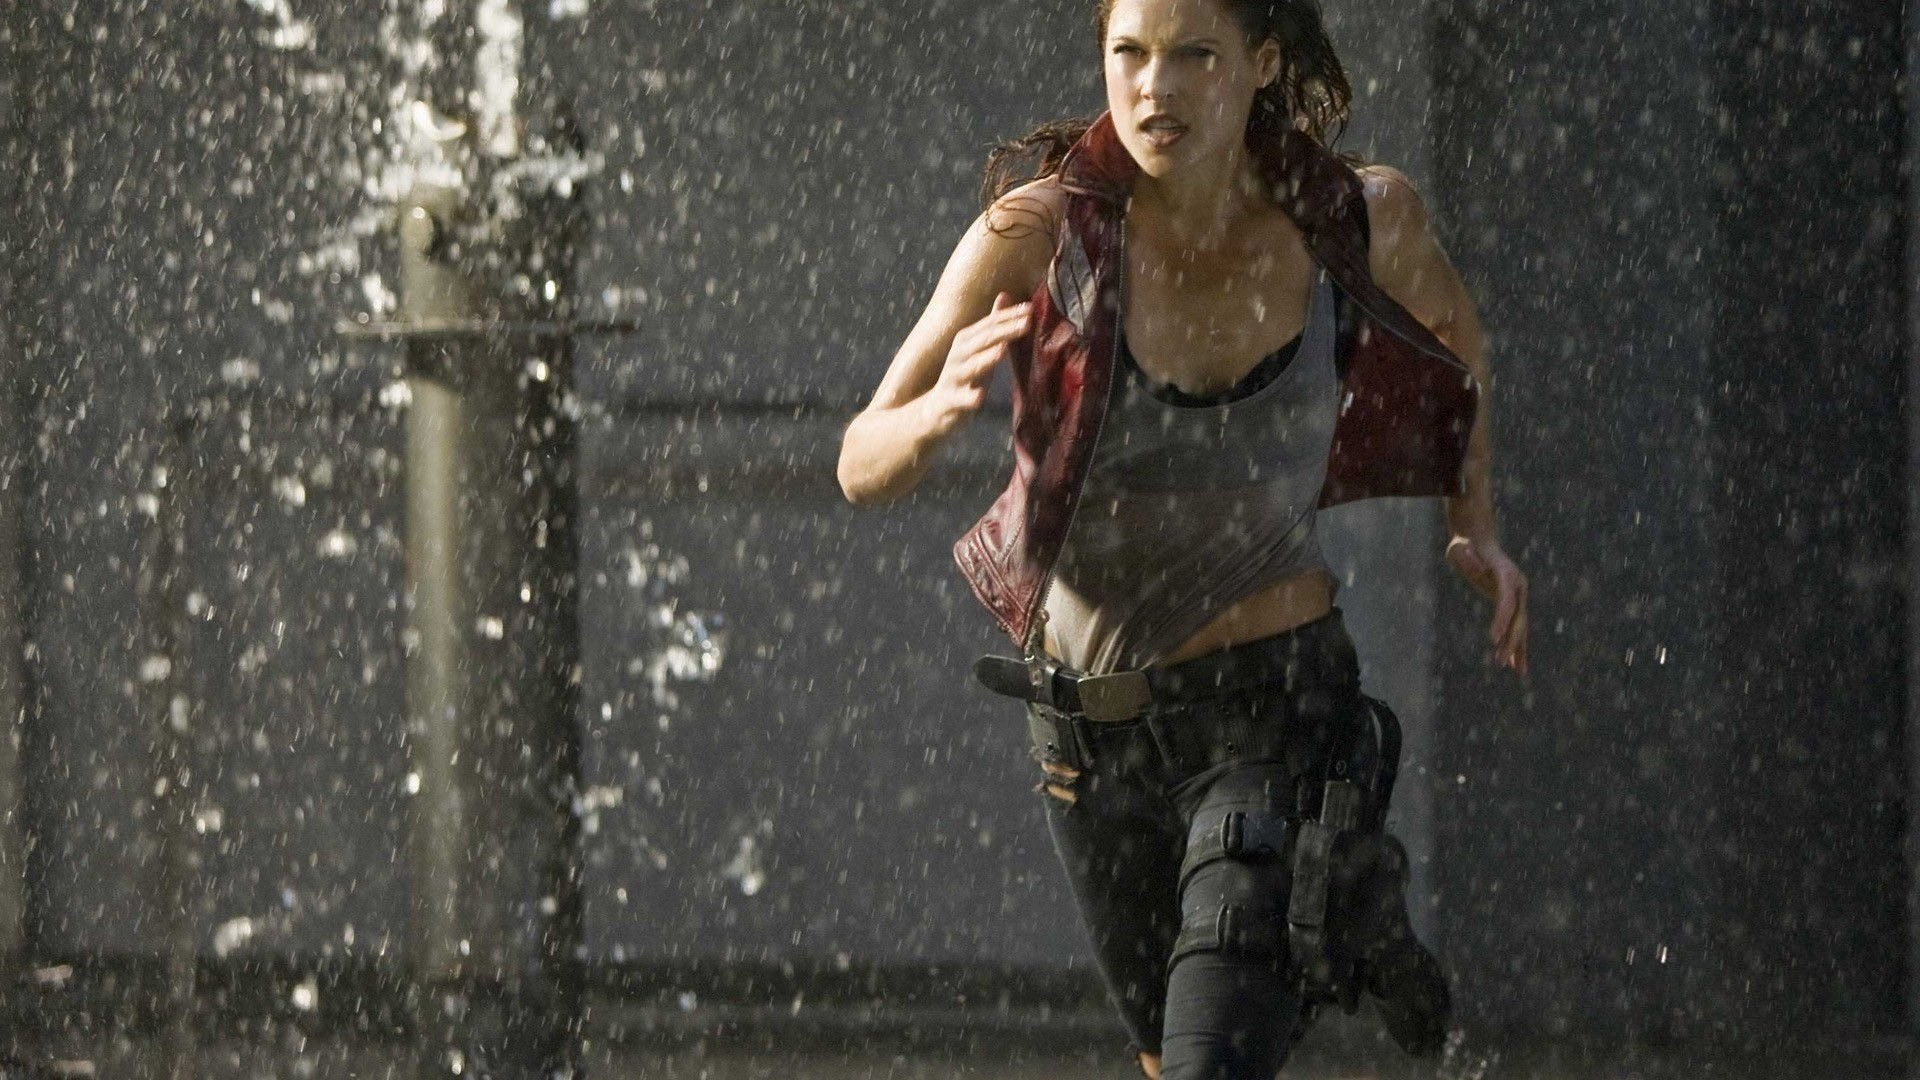 Res: 1920x1080, claire redfield wallpaper #771311